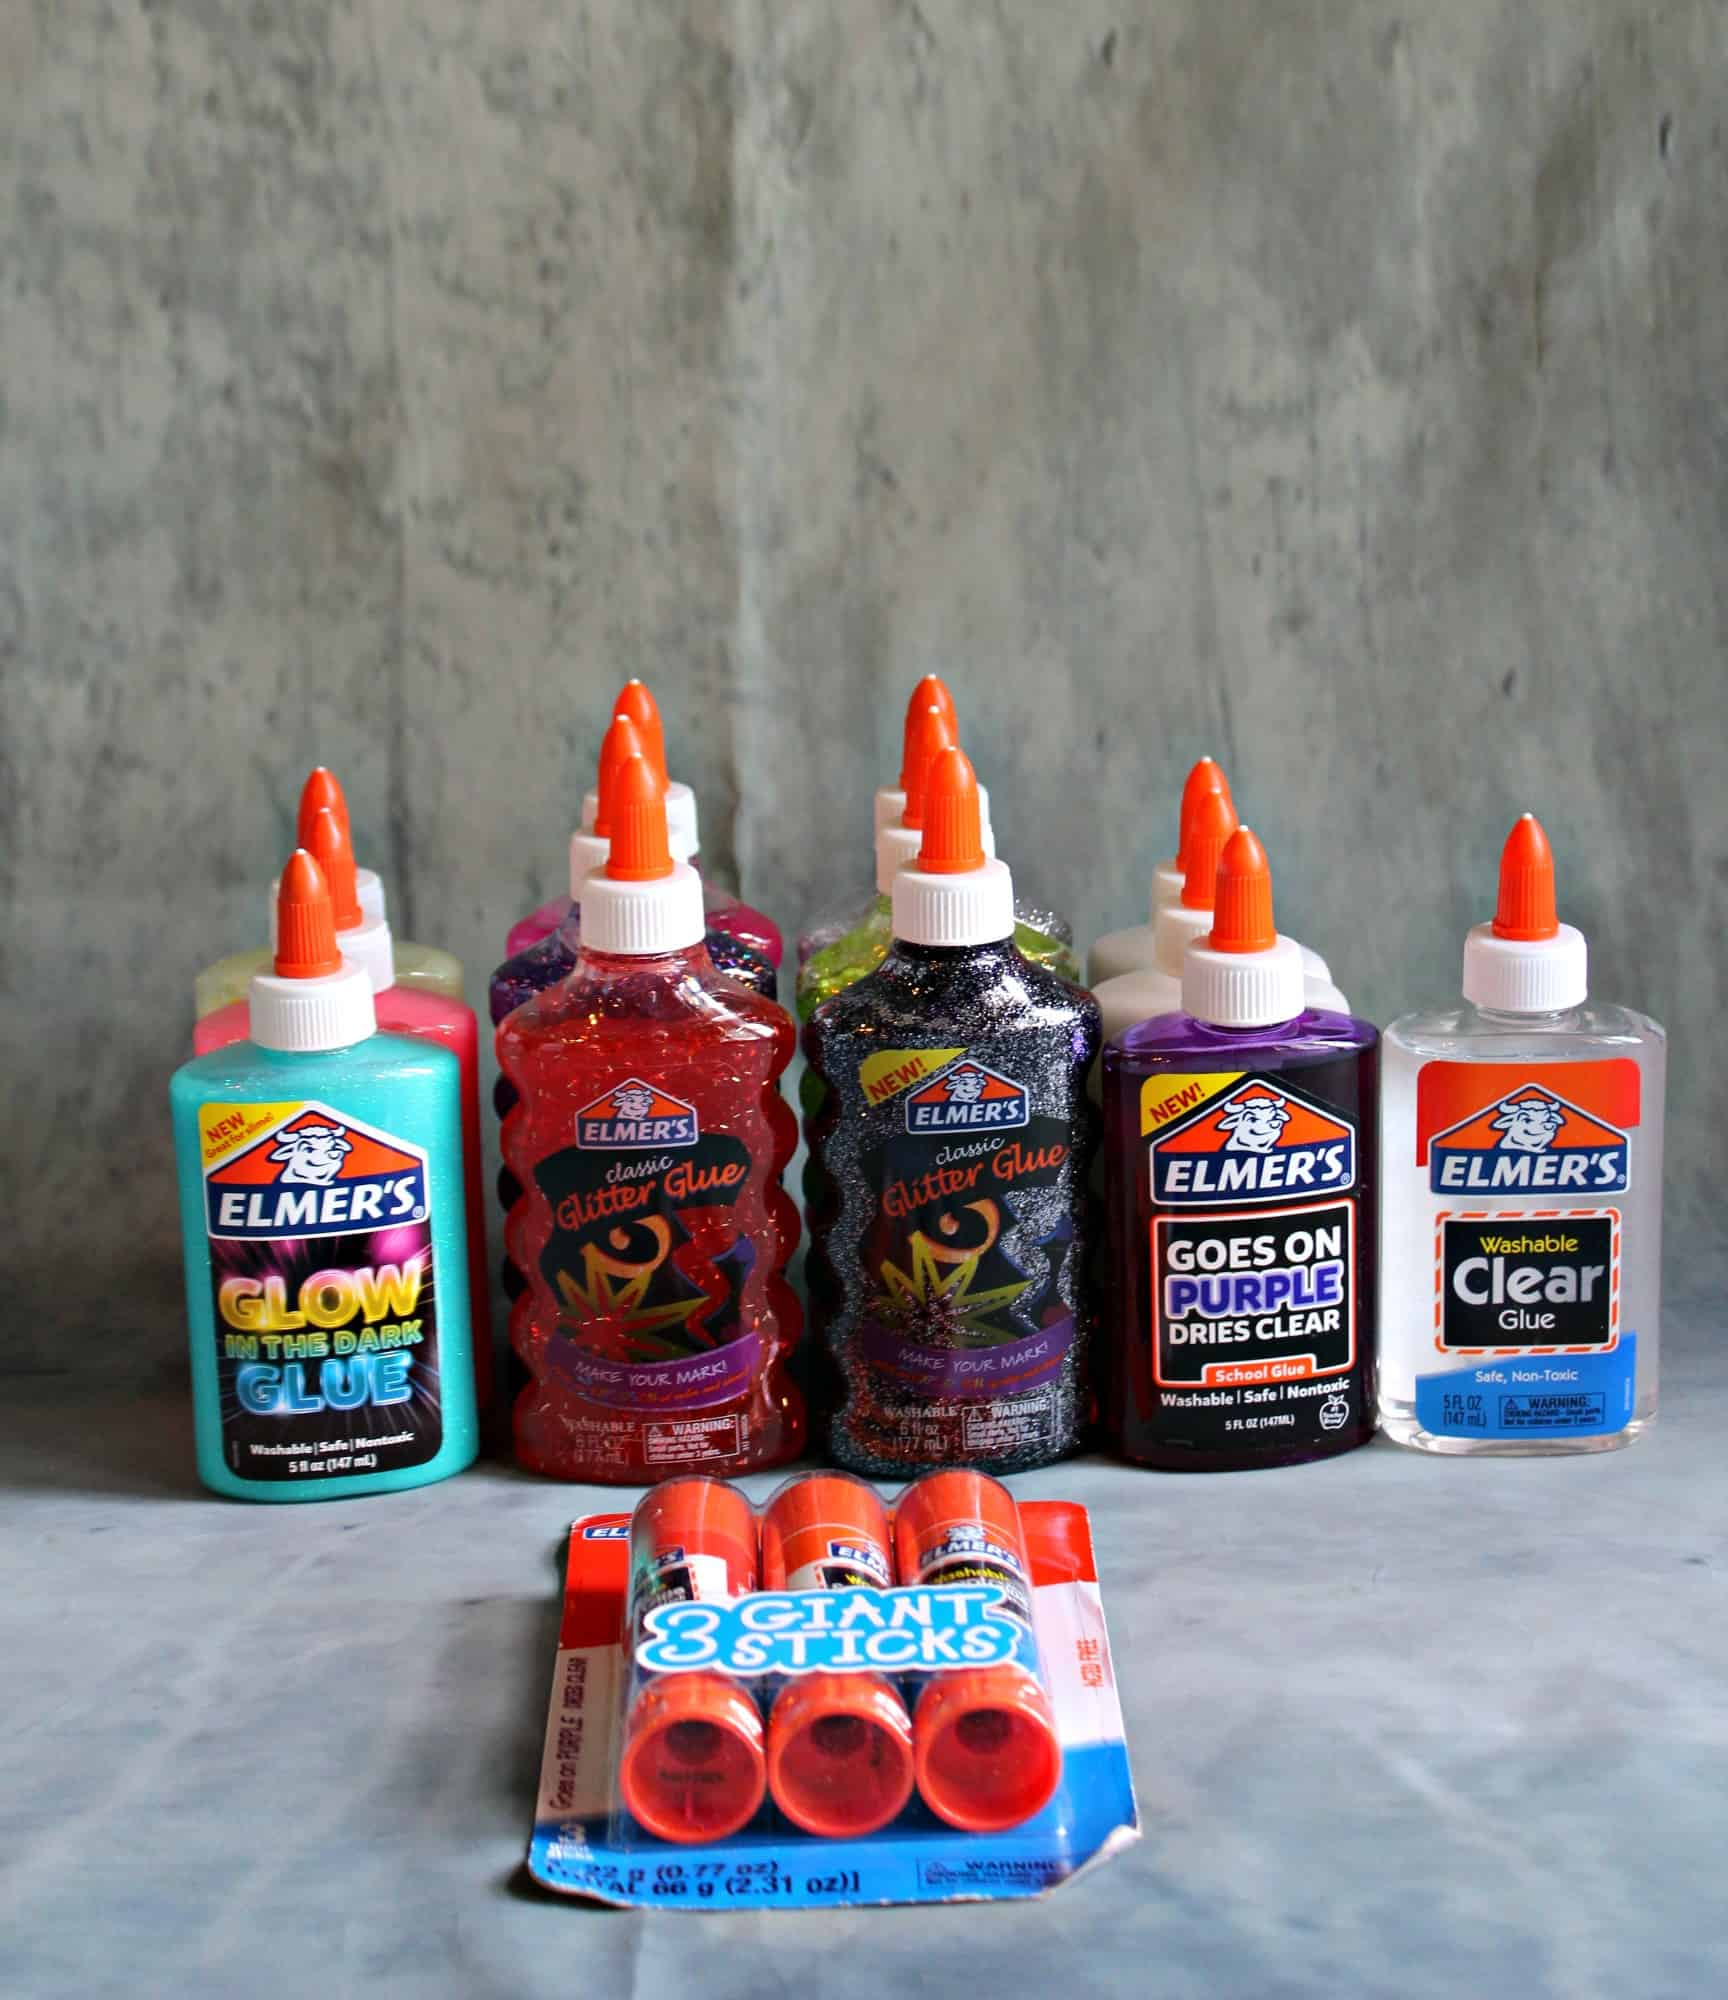 Elmer's Glue is perfect for Back to School